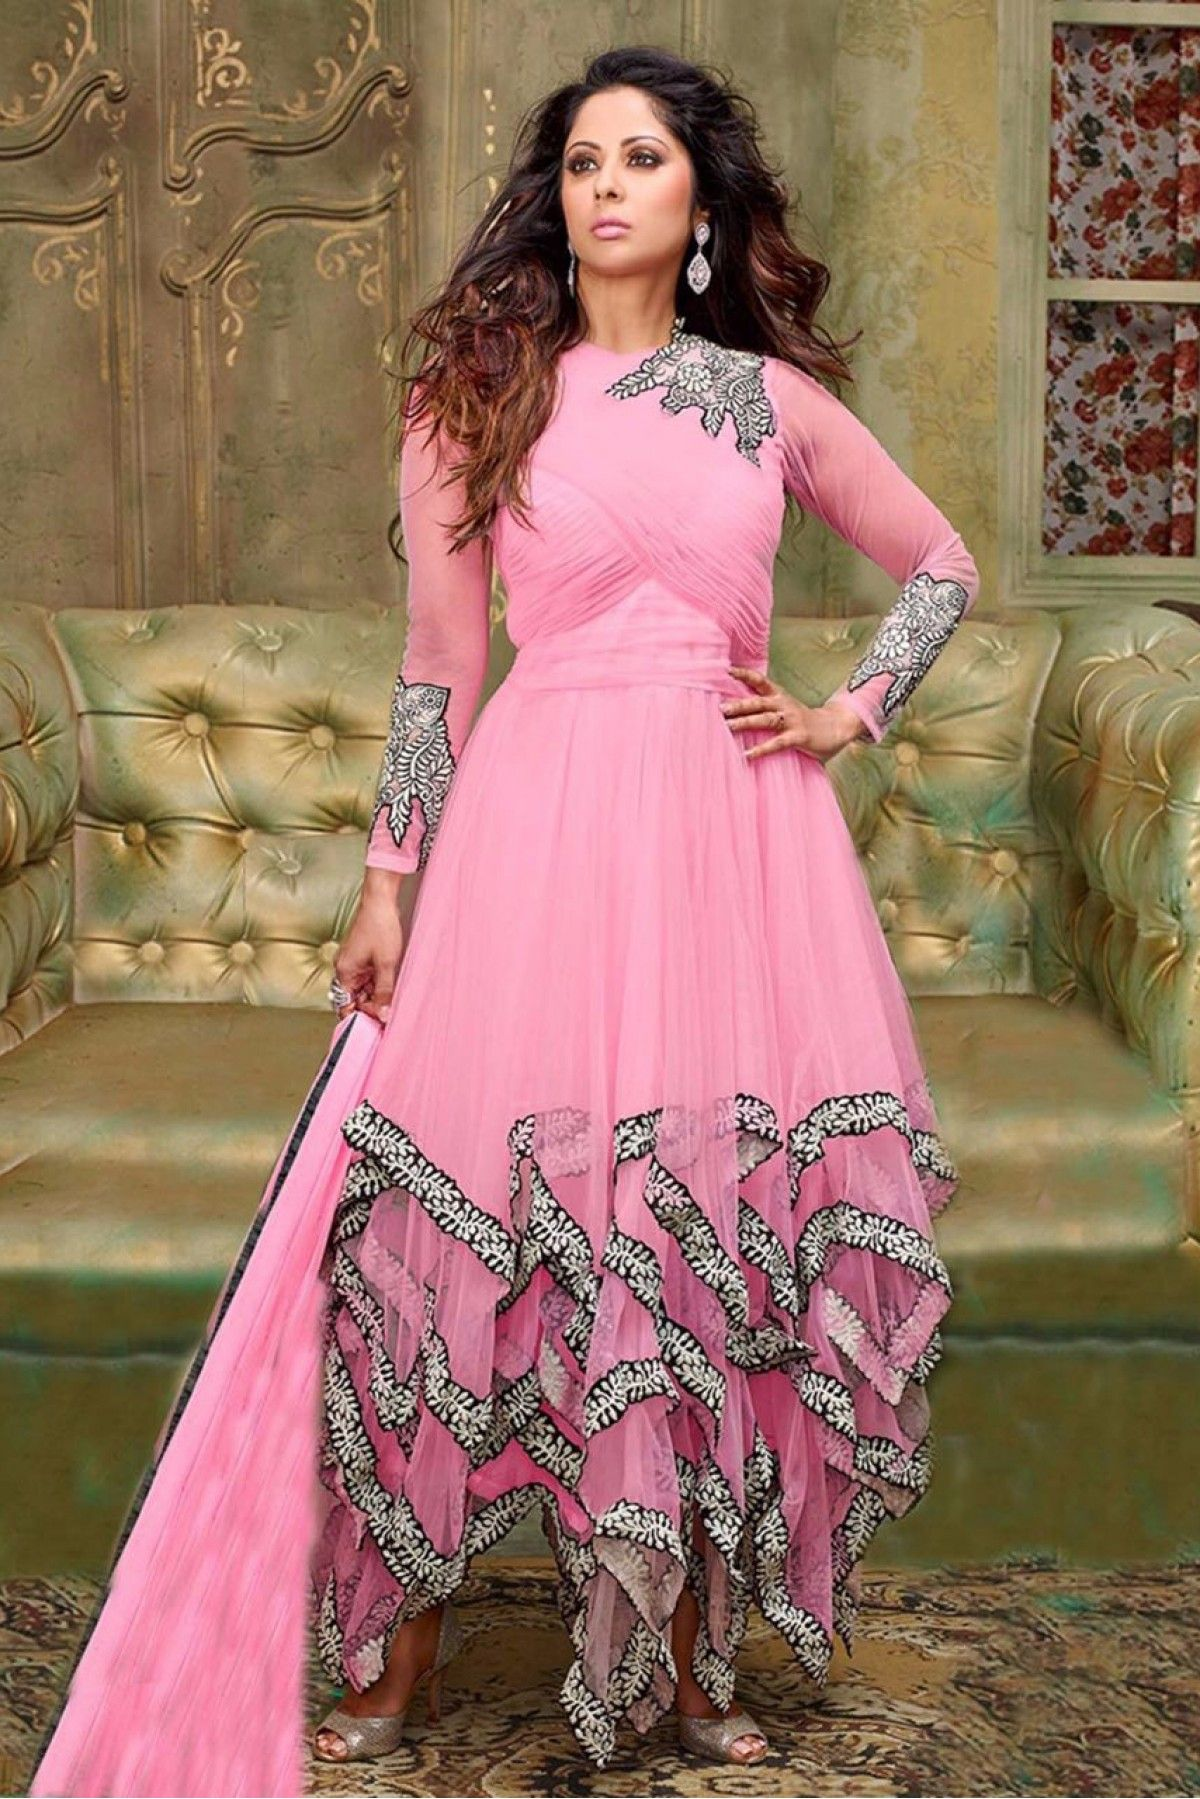 bd7e320cb5a Georgette Party Wear Anarkali Suit in Pink Colour.It comes with matching  Dupatta and Bottom.It is crfated with Embroidery